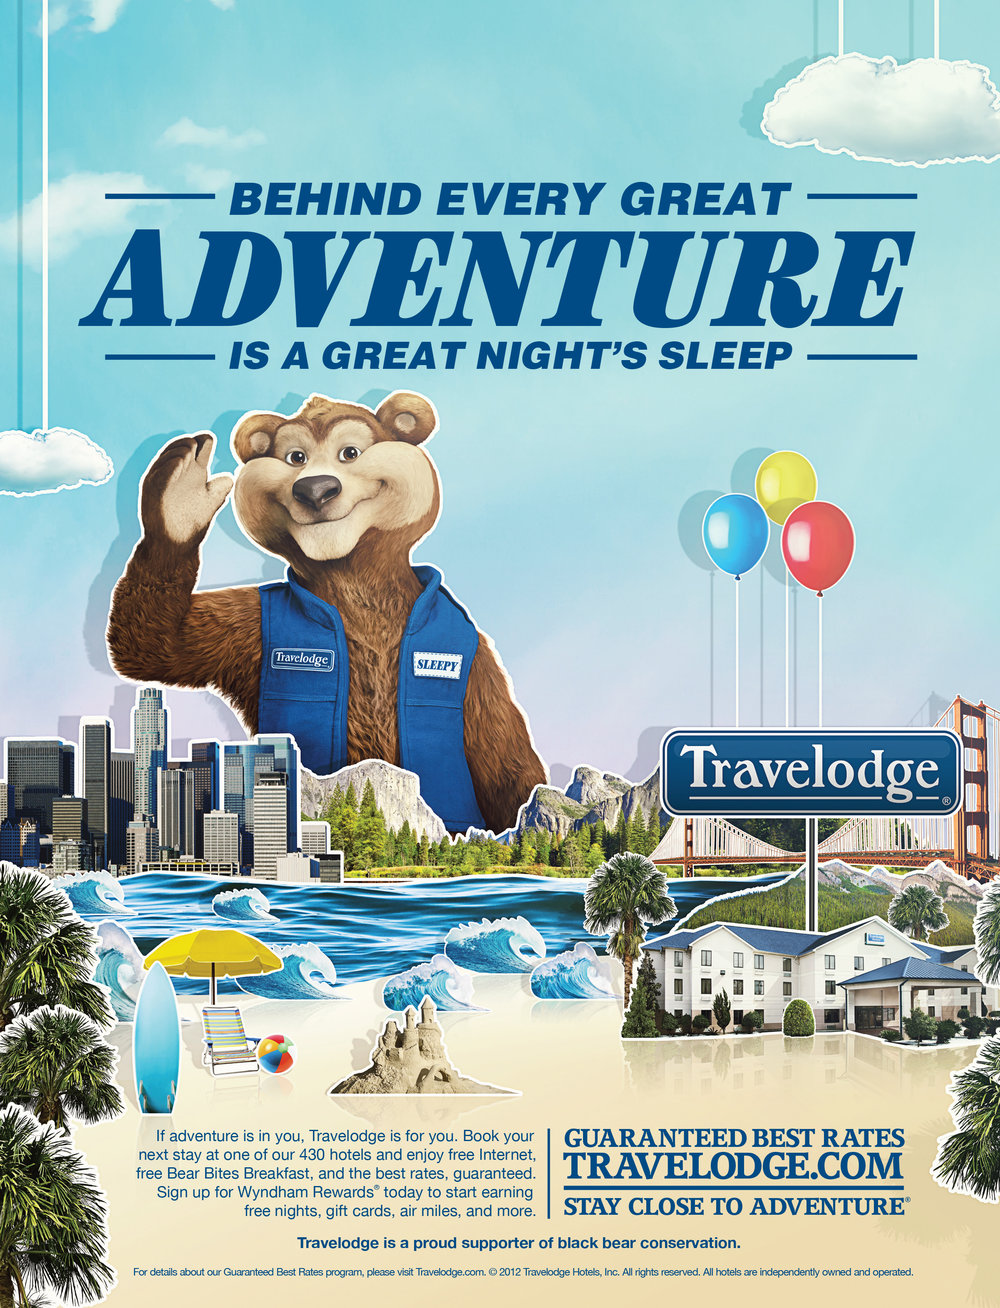 Travelodge_Adventure_Cali.jpg